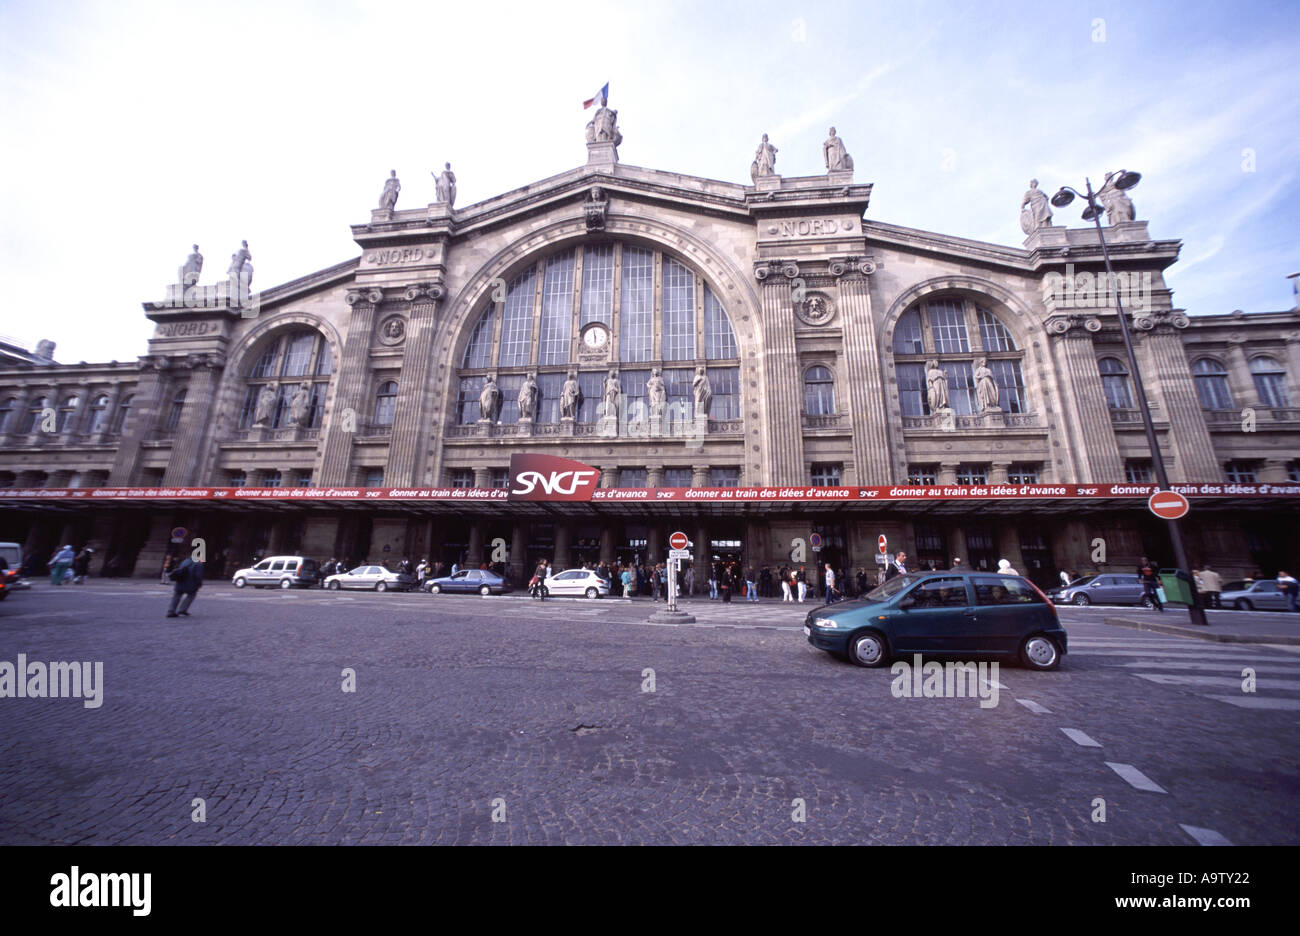 paris gare du nord station eurostar train terminal stock photo royalty free image 4061985 alamy. Black Bedroom Furniture Sets. Home Design Ideas